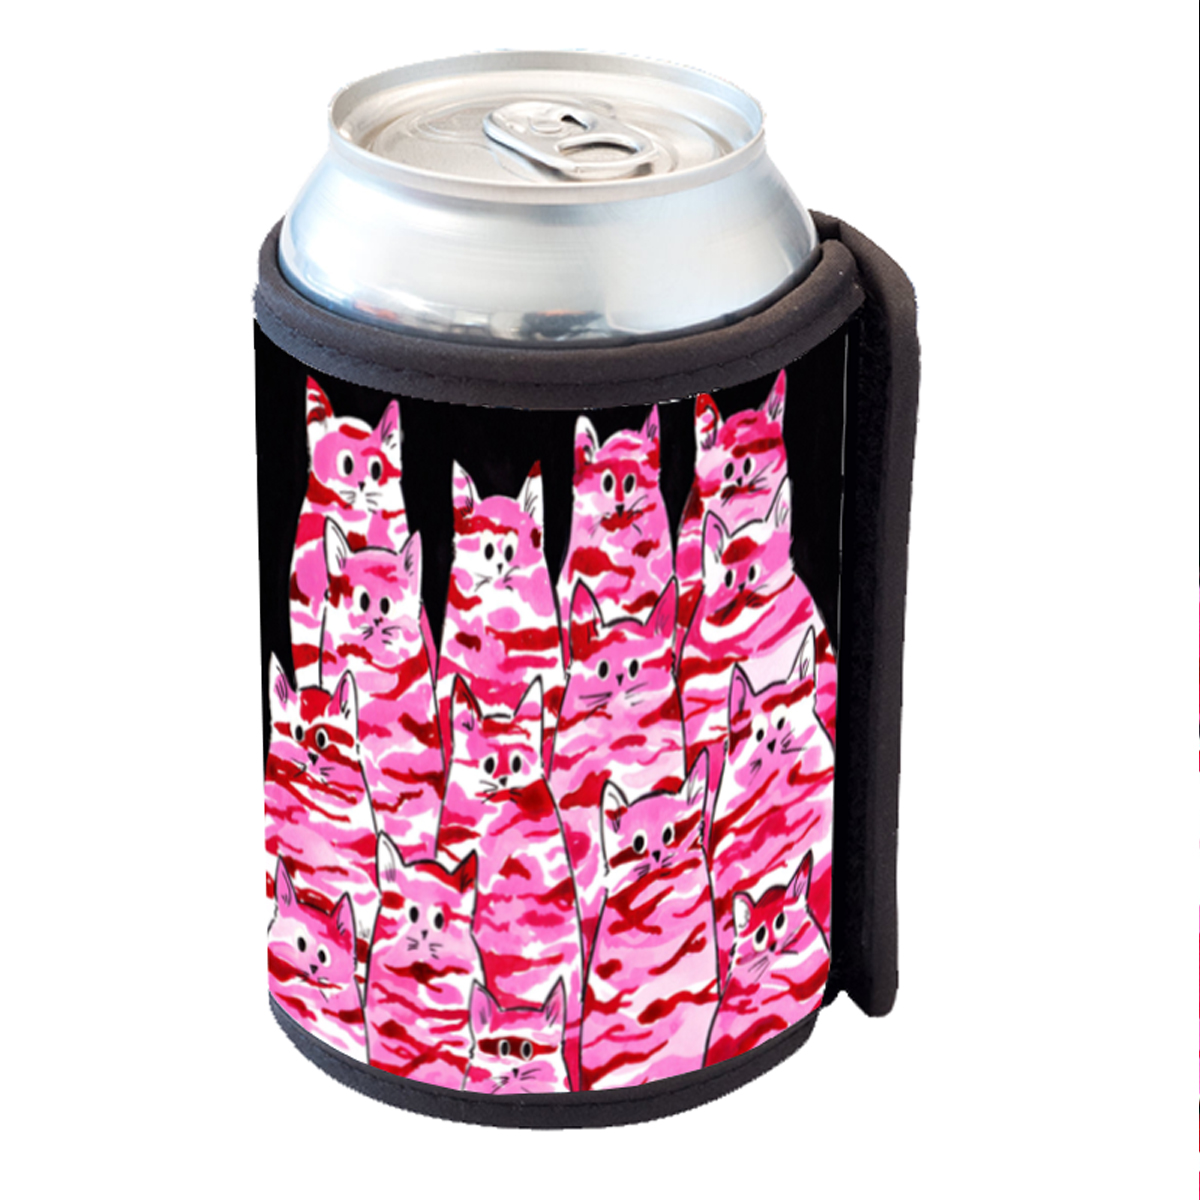 KuzmarK Insulated Drink Can Cooler Hugger - Pink Camo Camouflage Kitties Abstract Cat Art by Denise Every